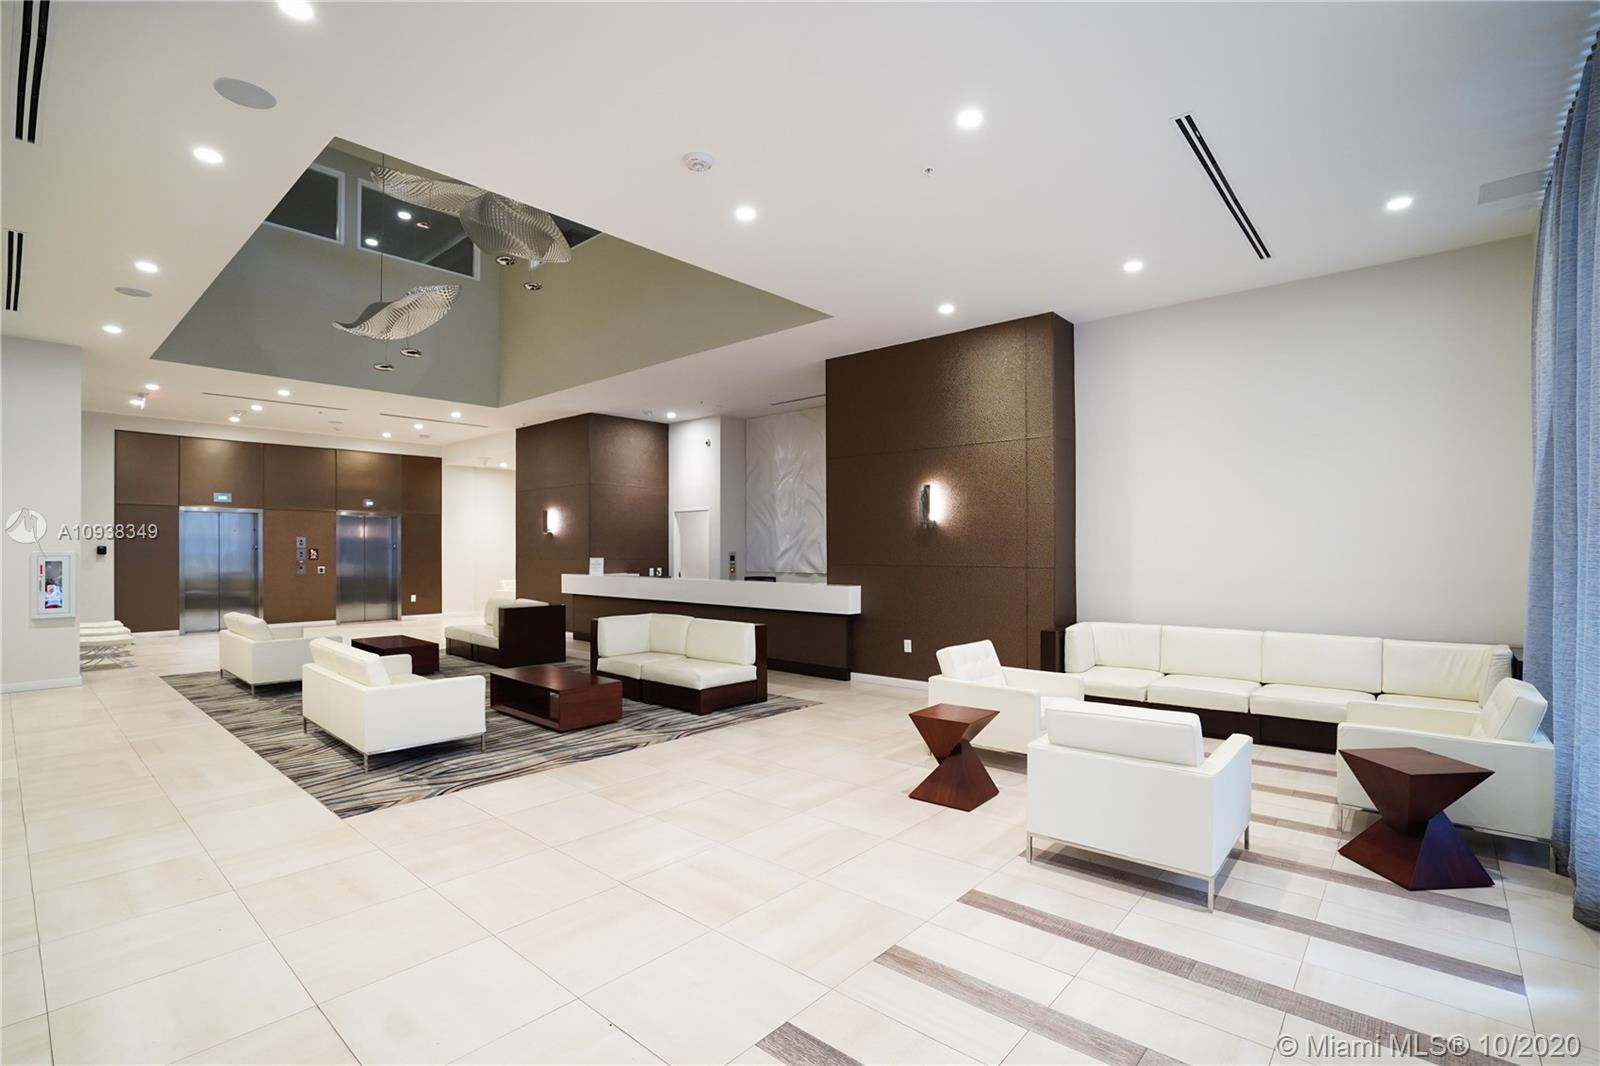 Midtown Doral - Building 2 #216 - 7751 NW 107th Ave #216, Doral, FL 33178